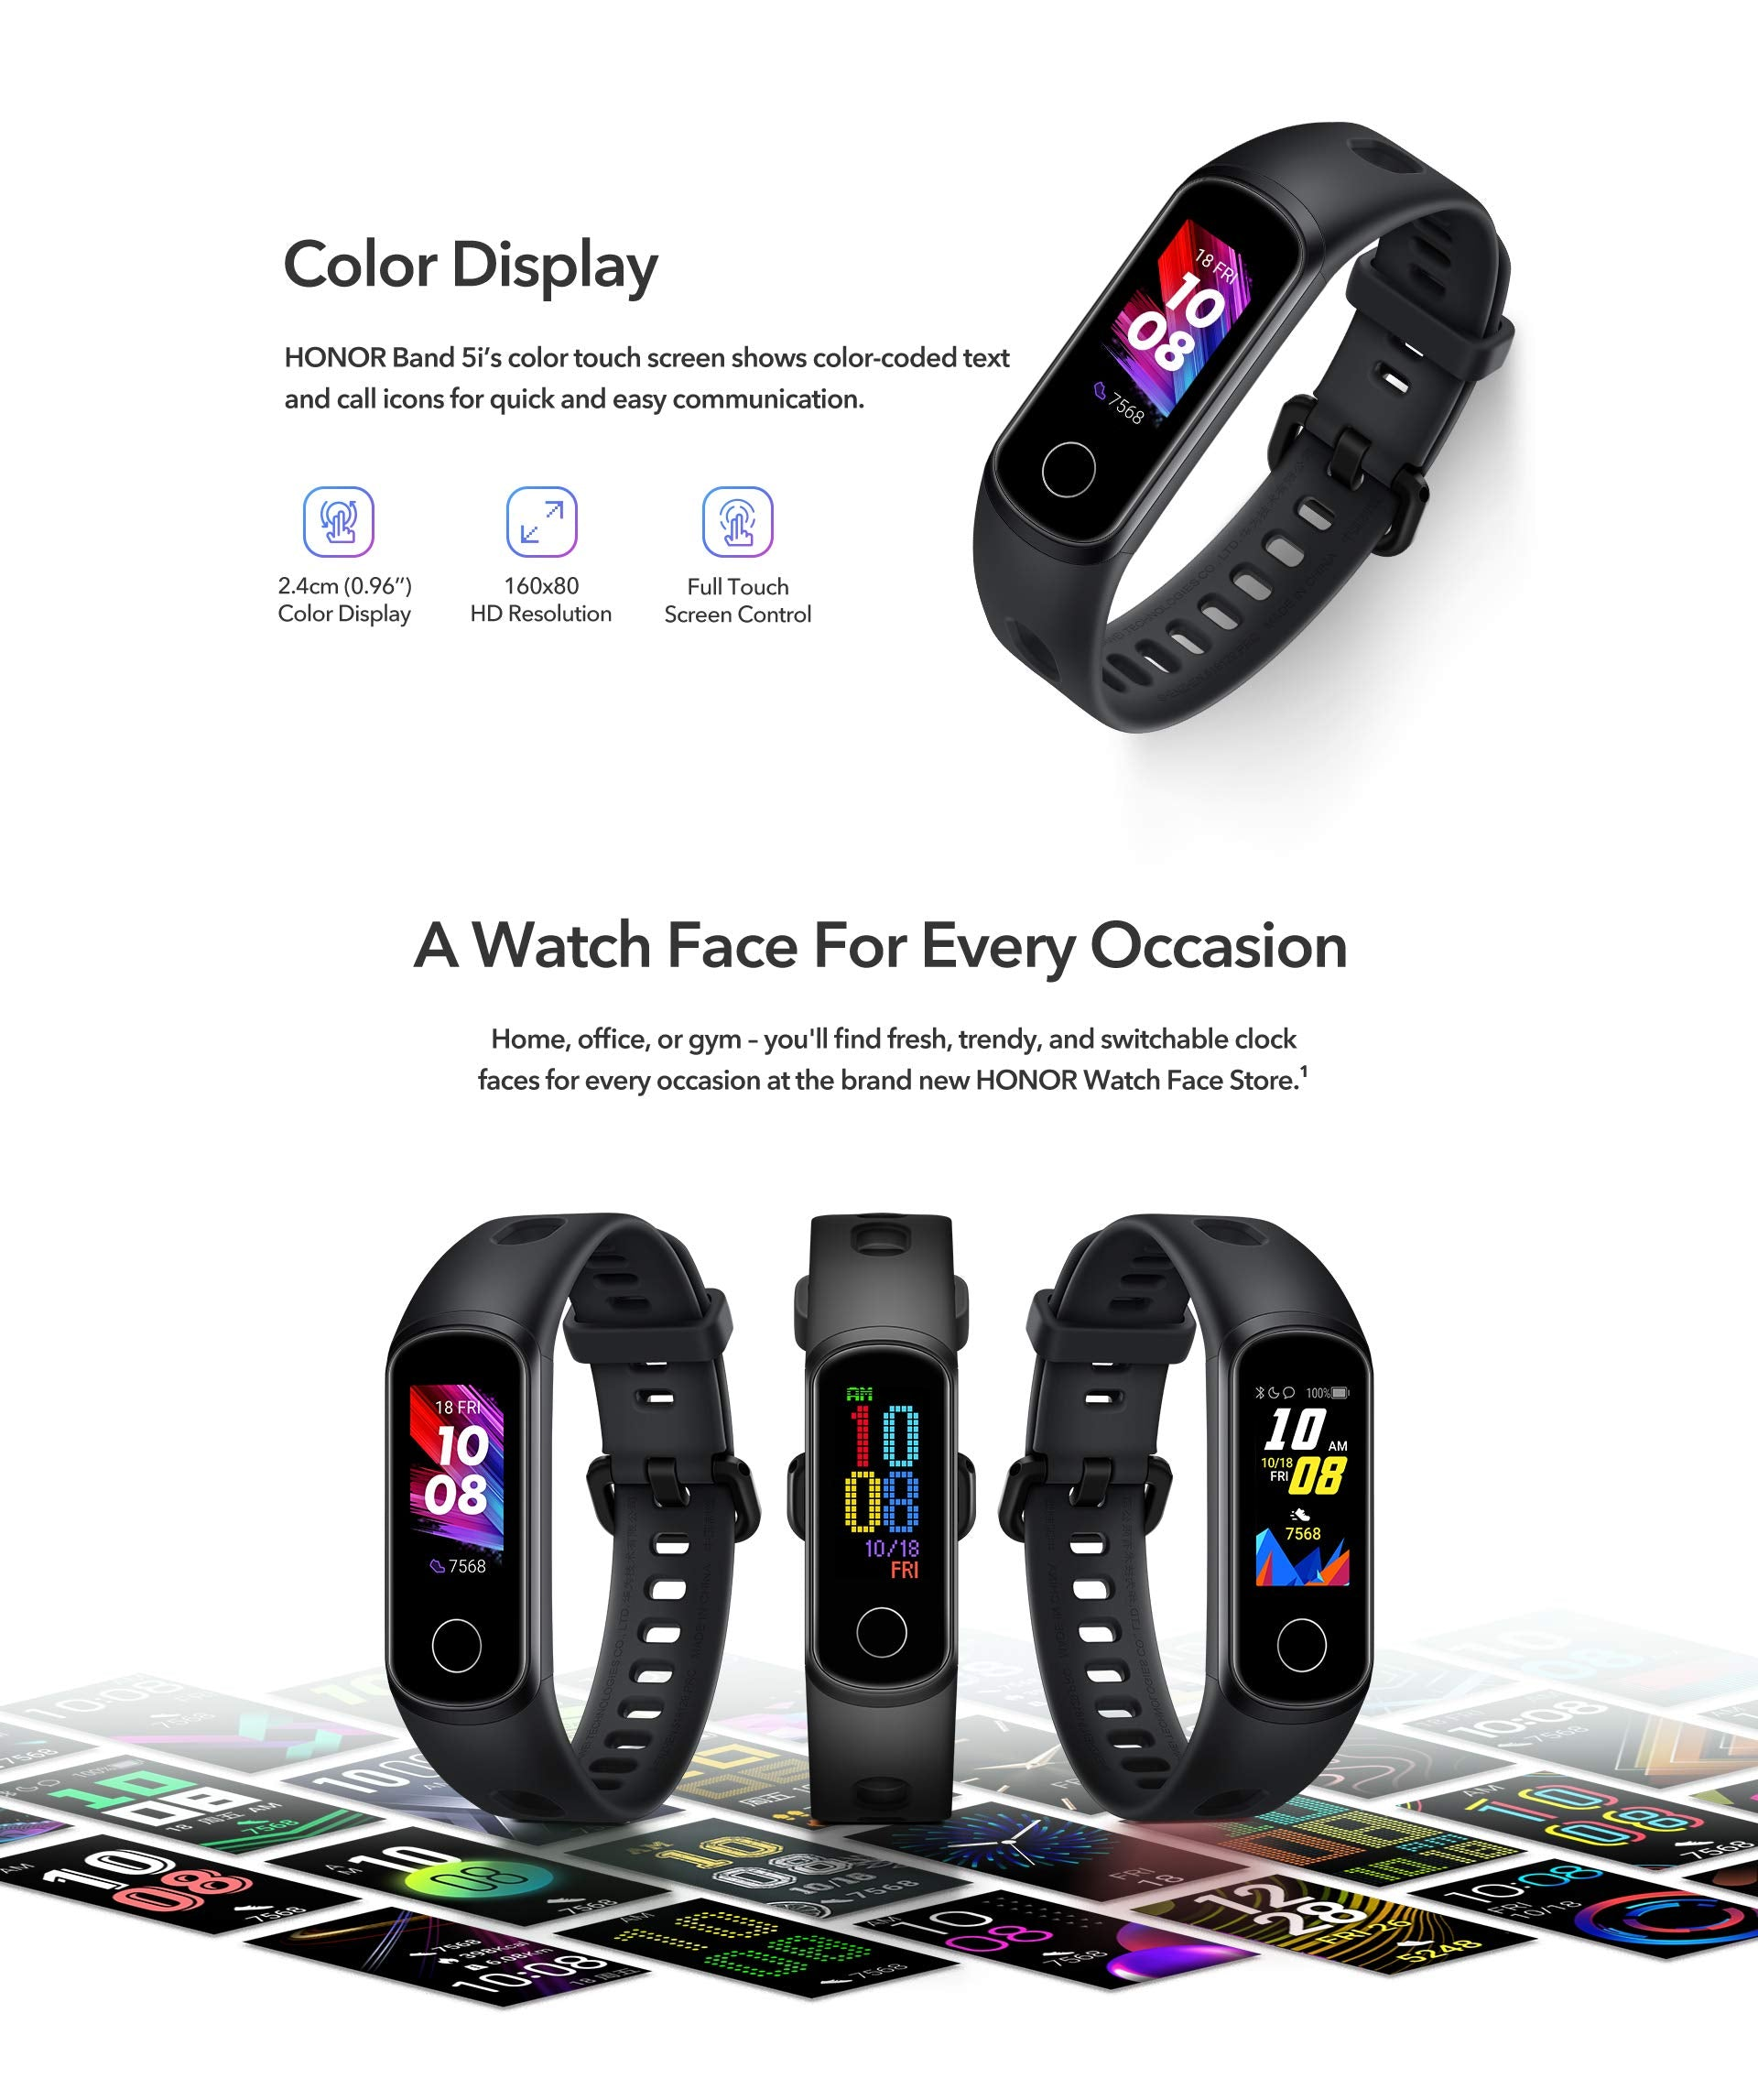 honor band 5i in india price